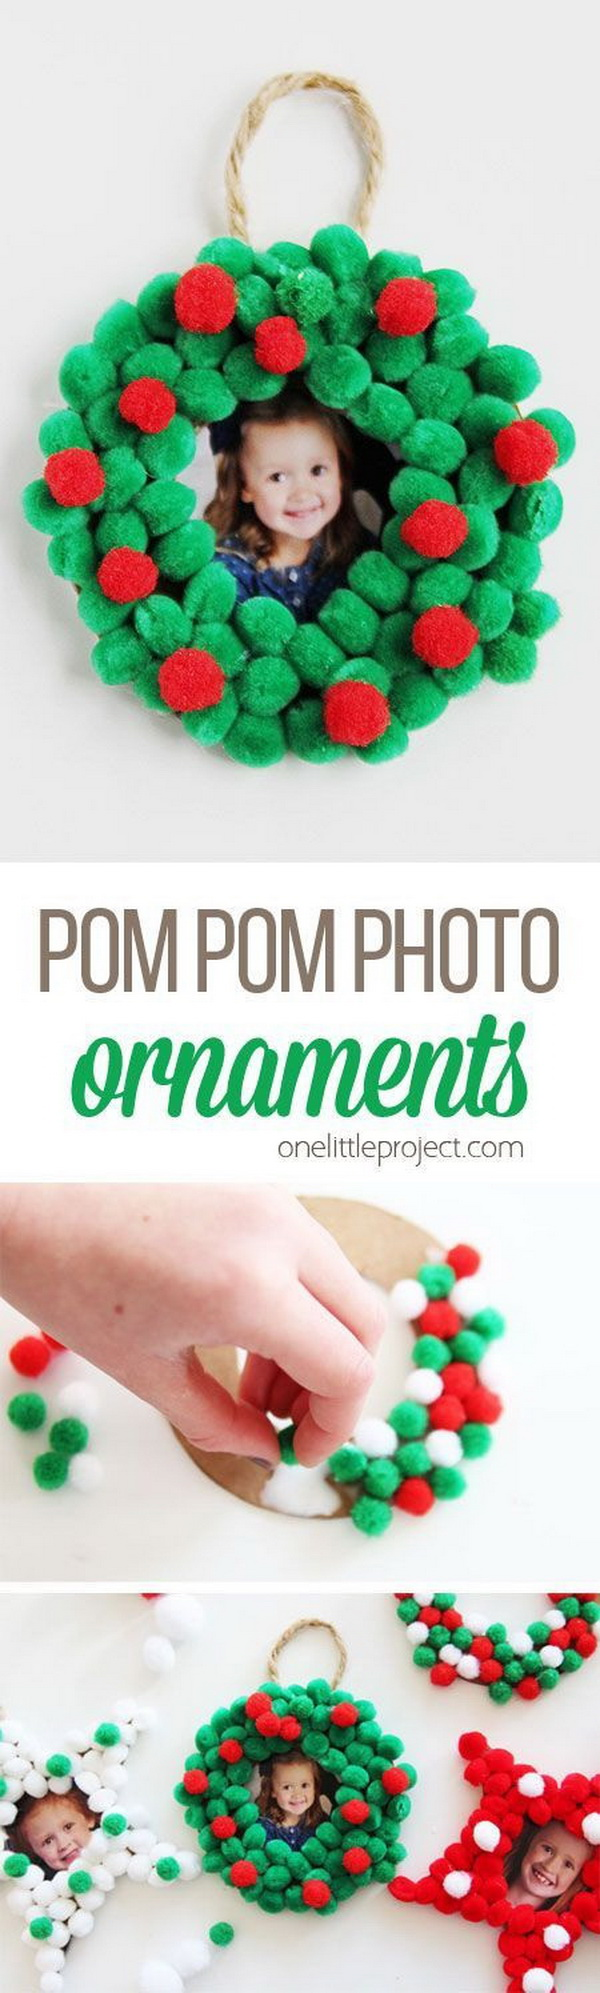 Pom Pom Christmas Photo Ornaments.